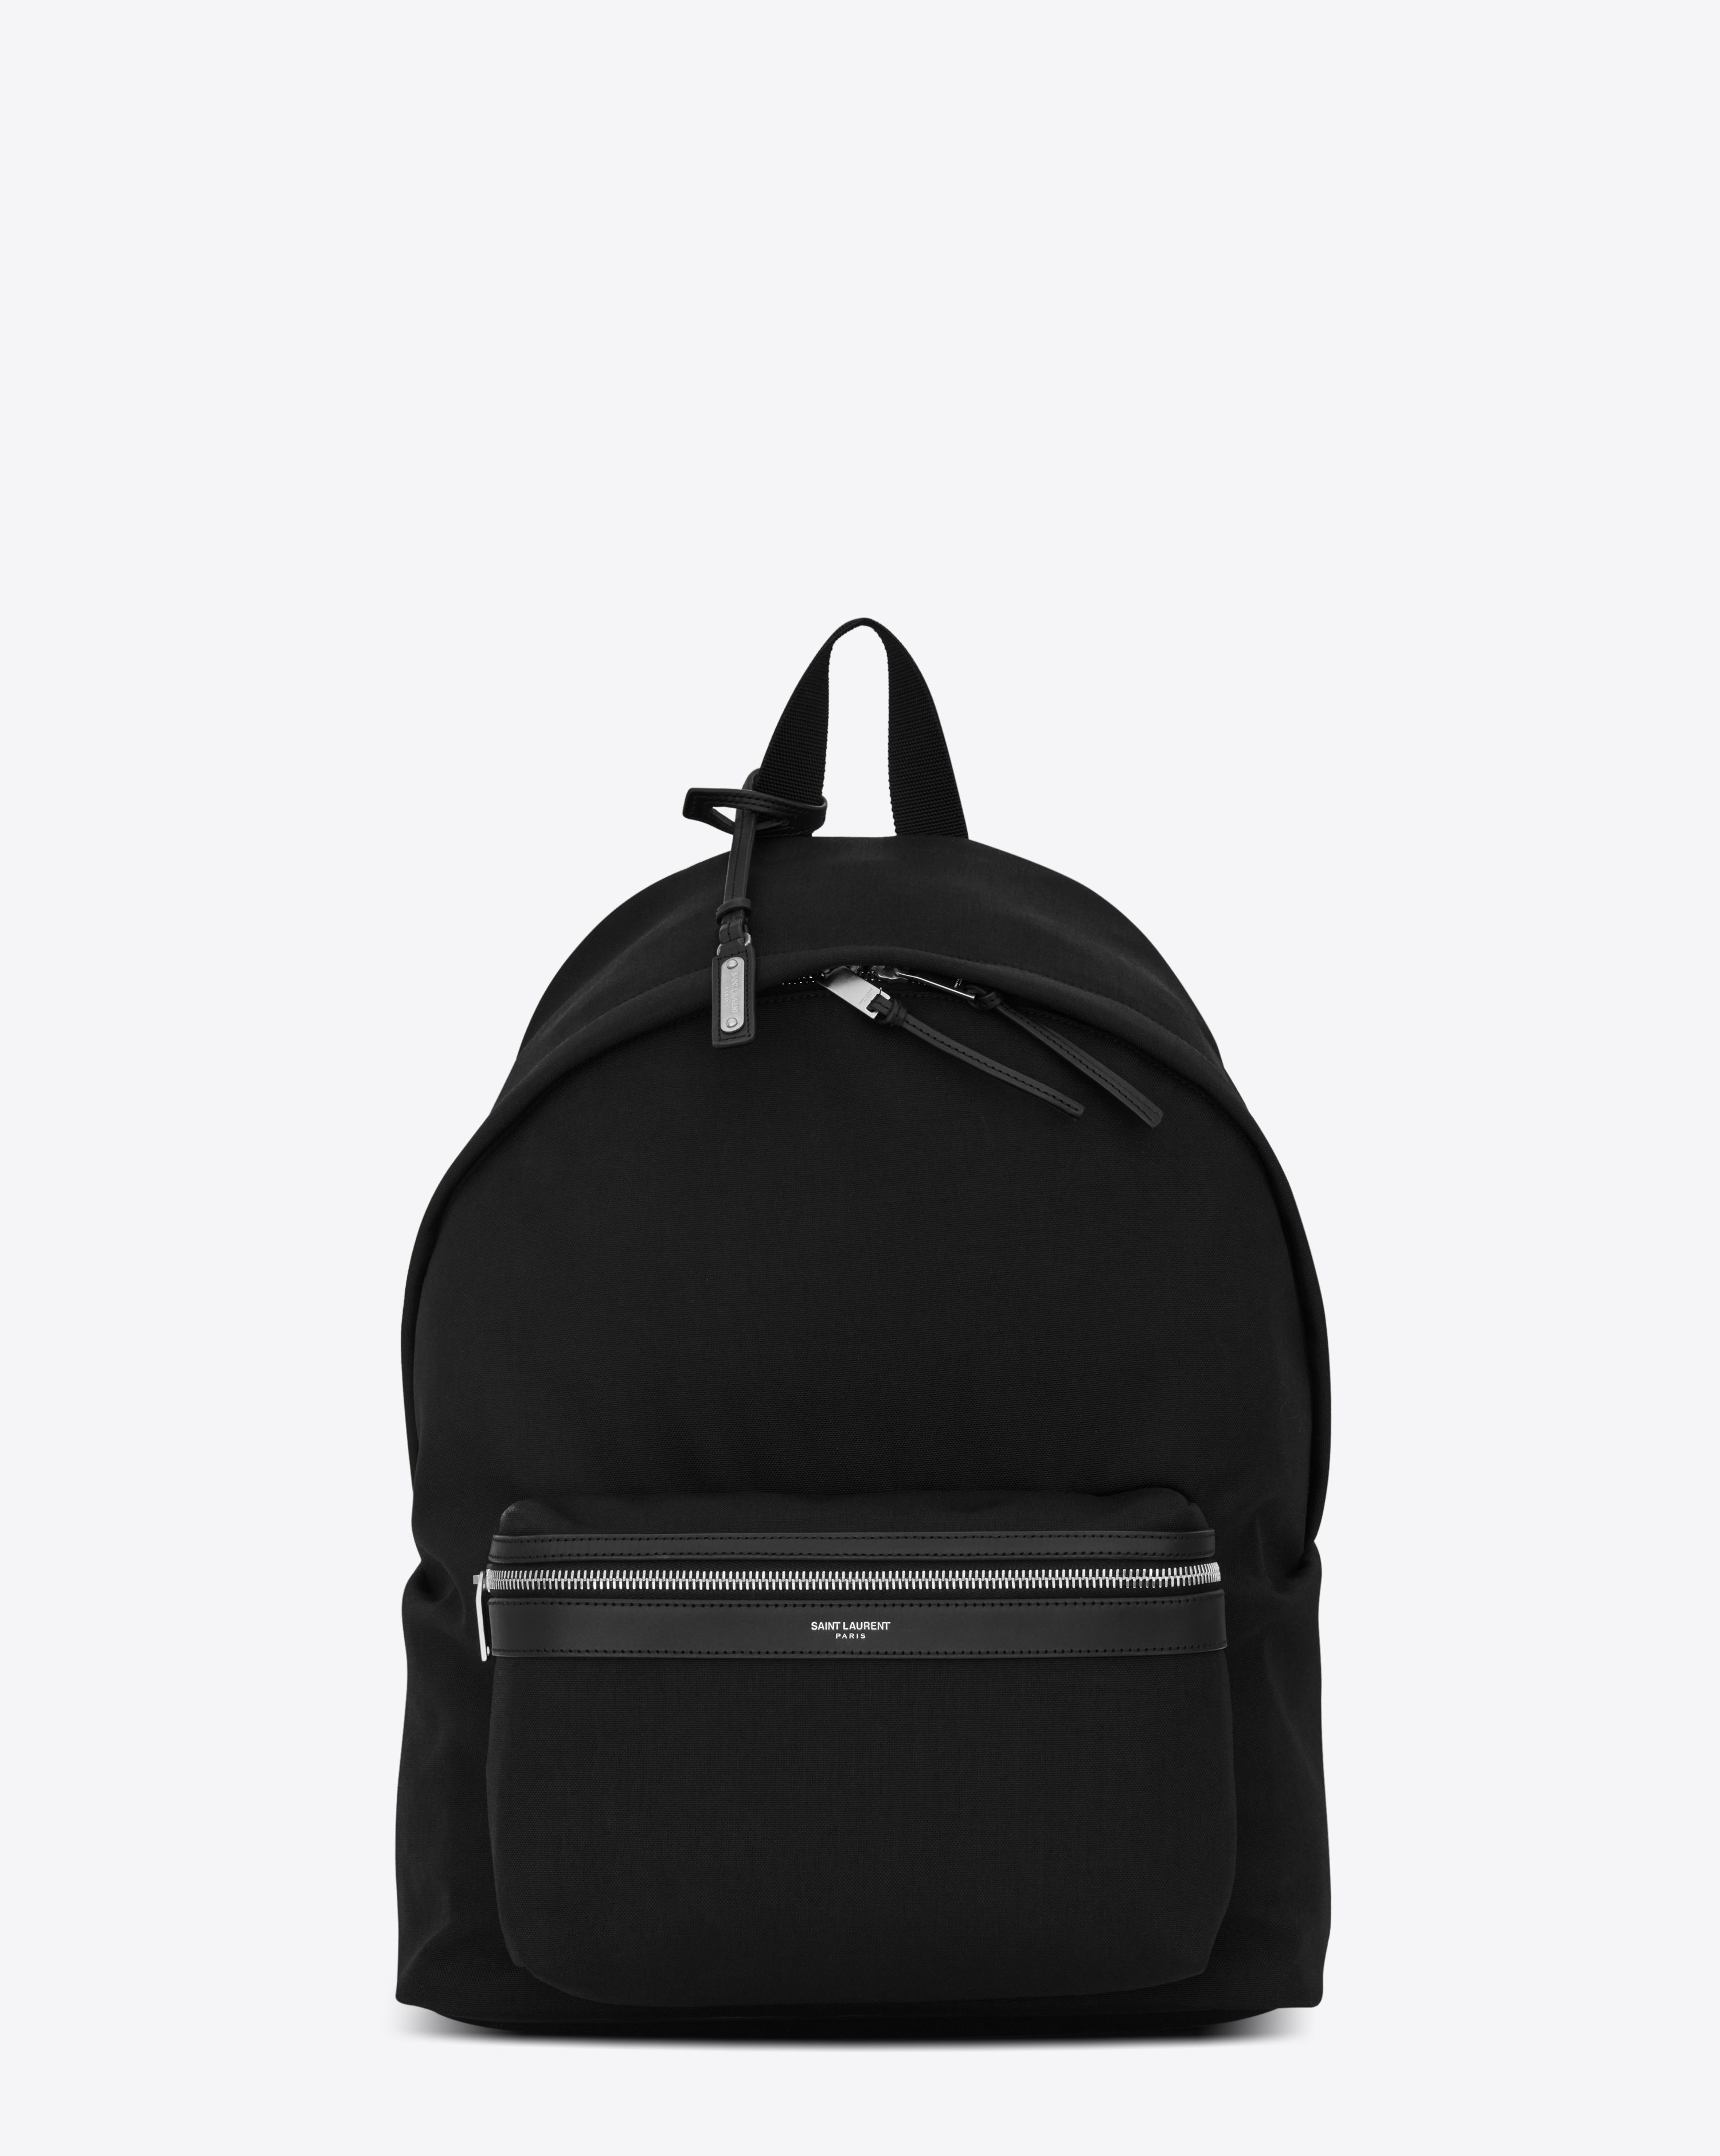 Saint Laurent Releases First Luxury Smart Backpack